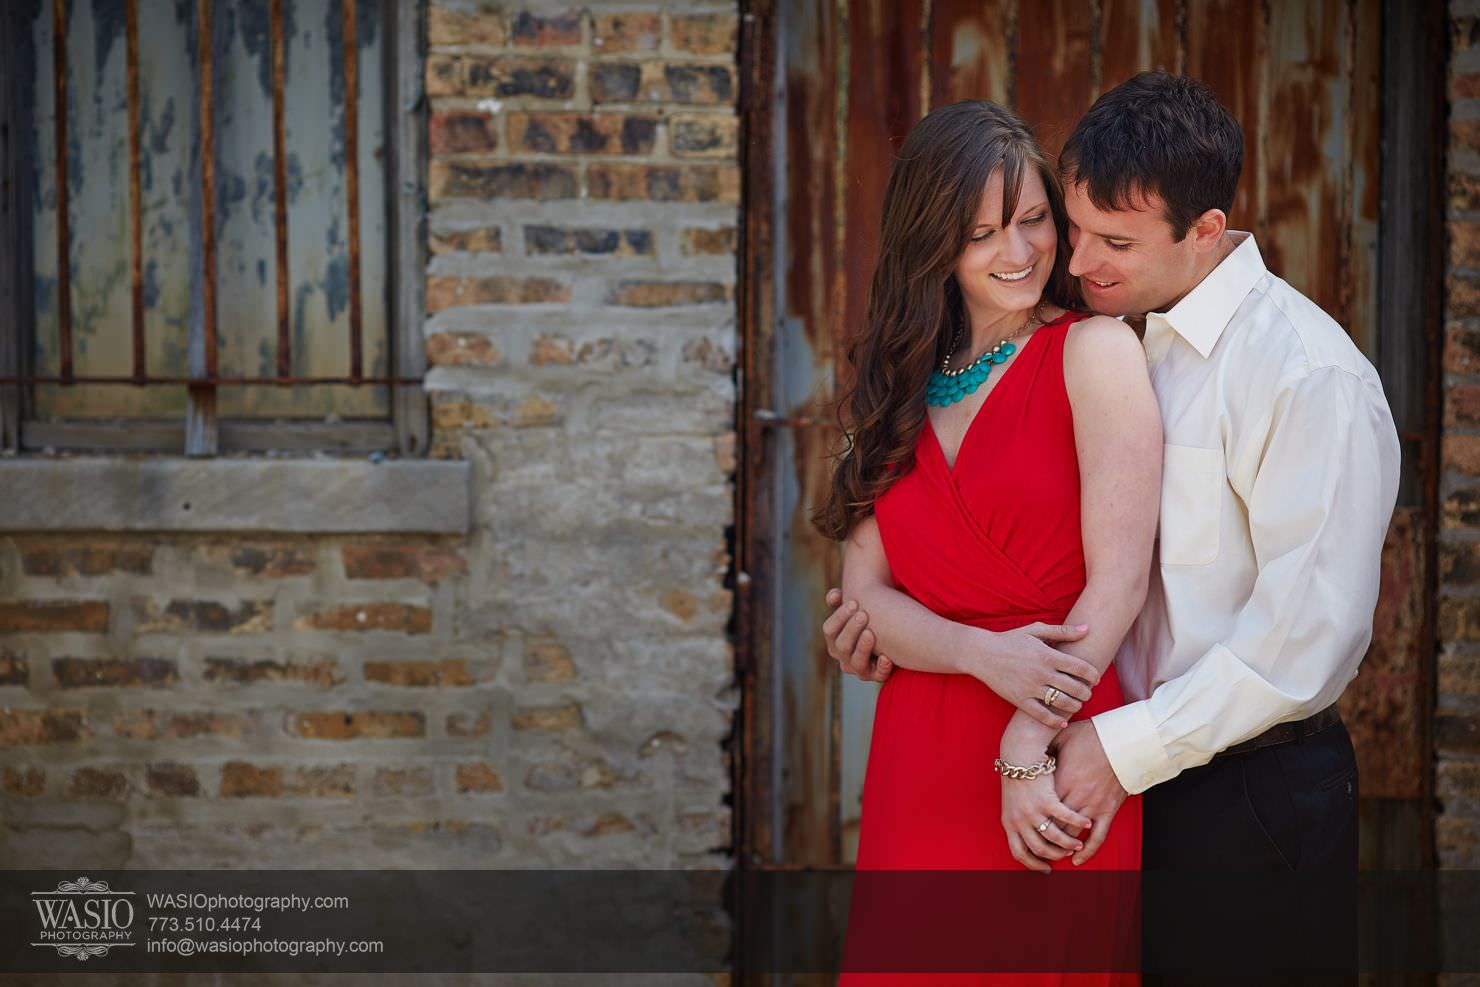 Roscoe-Village-Engagement-Amy-and-Kyle_001 Roscoe Village Engagement - Amy + Kyle